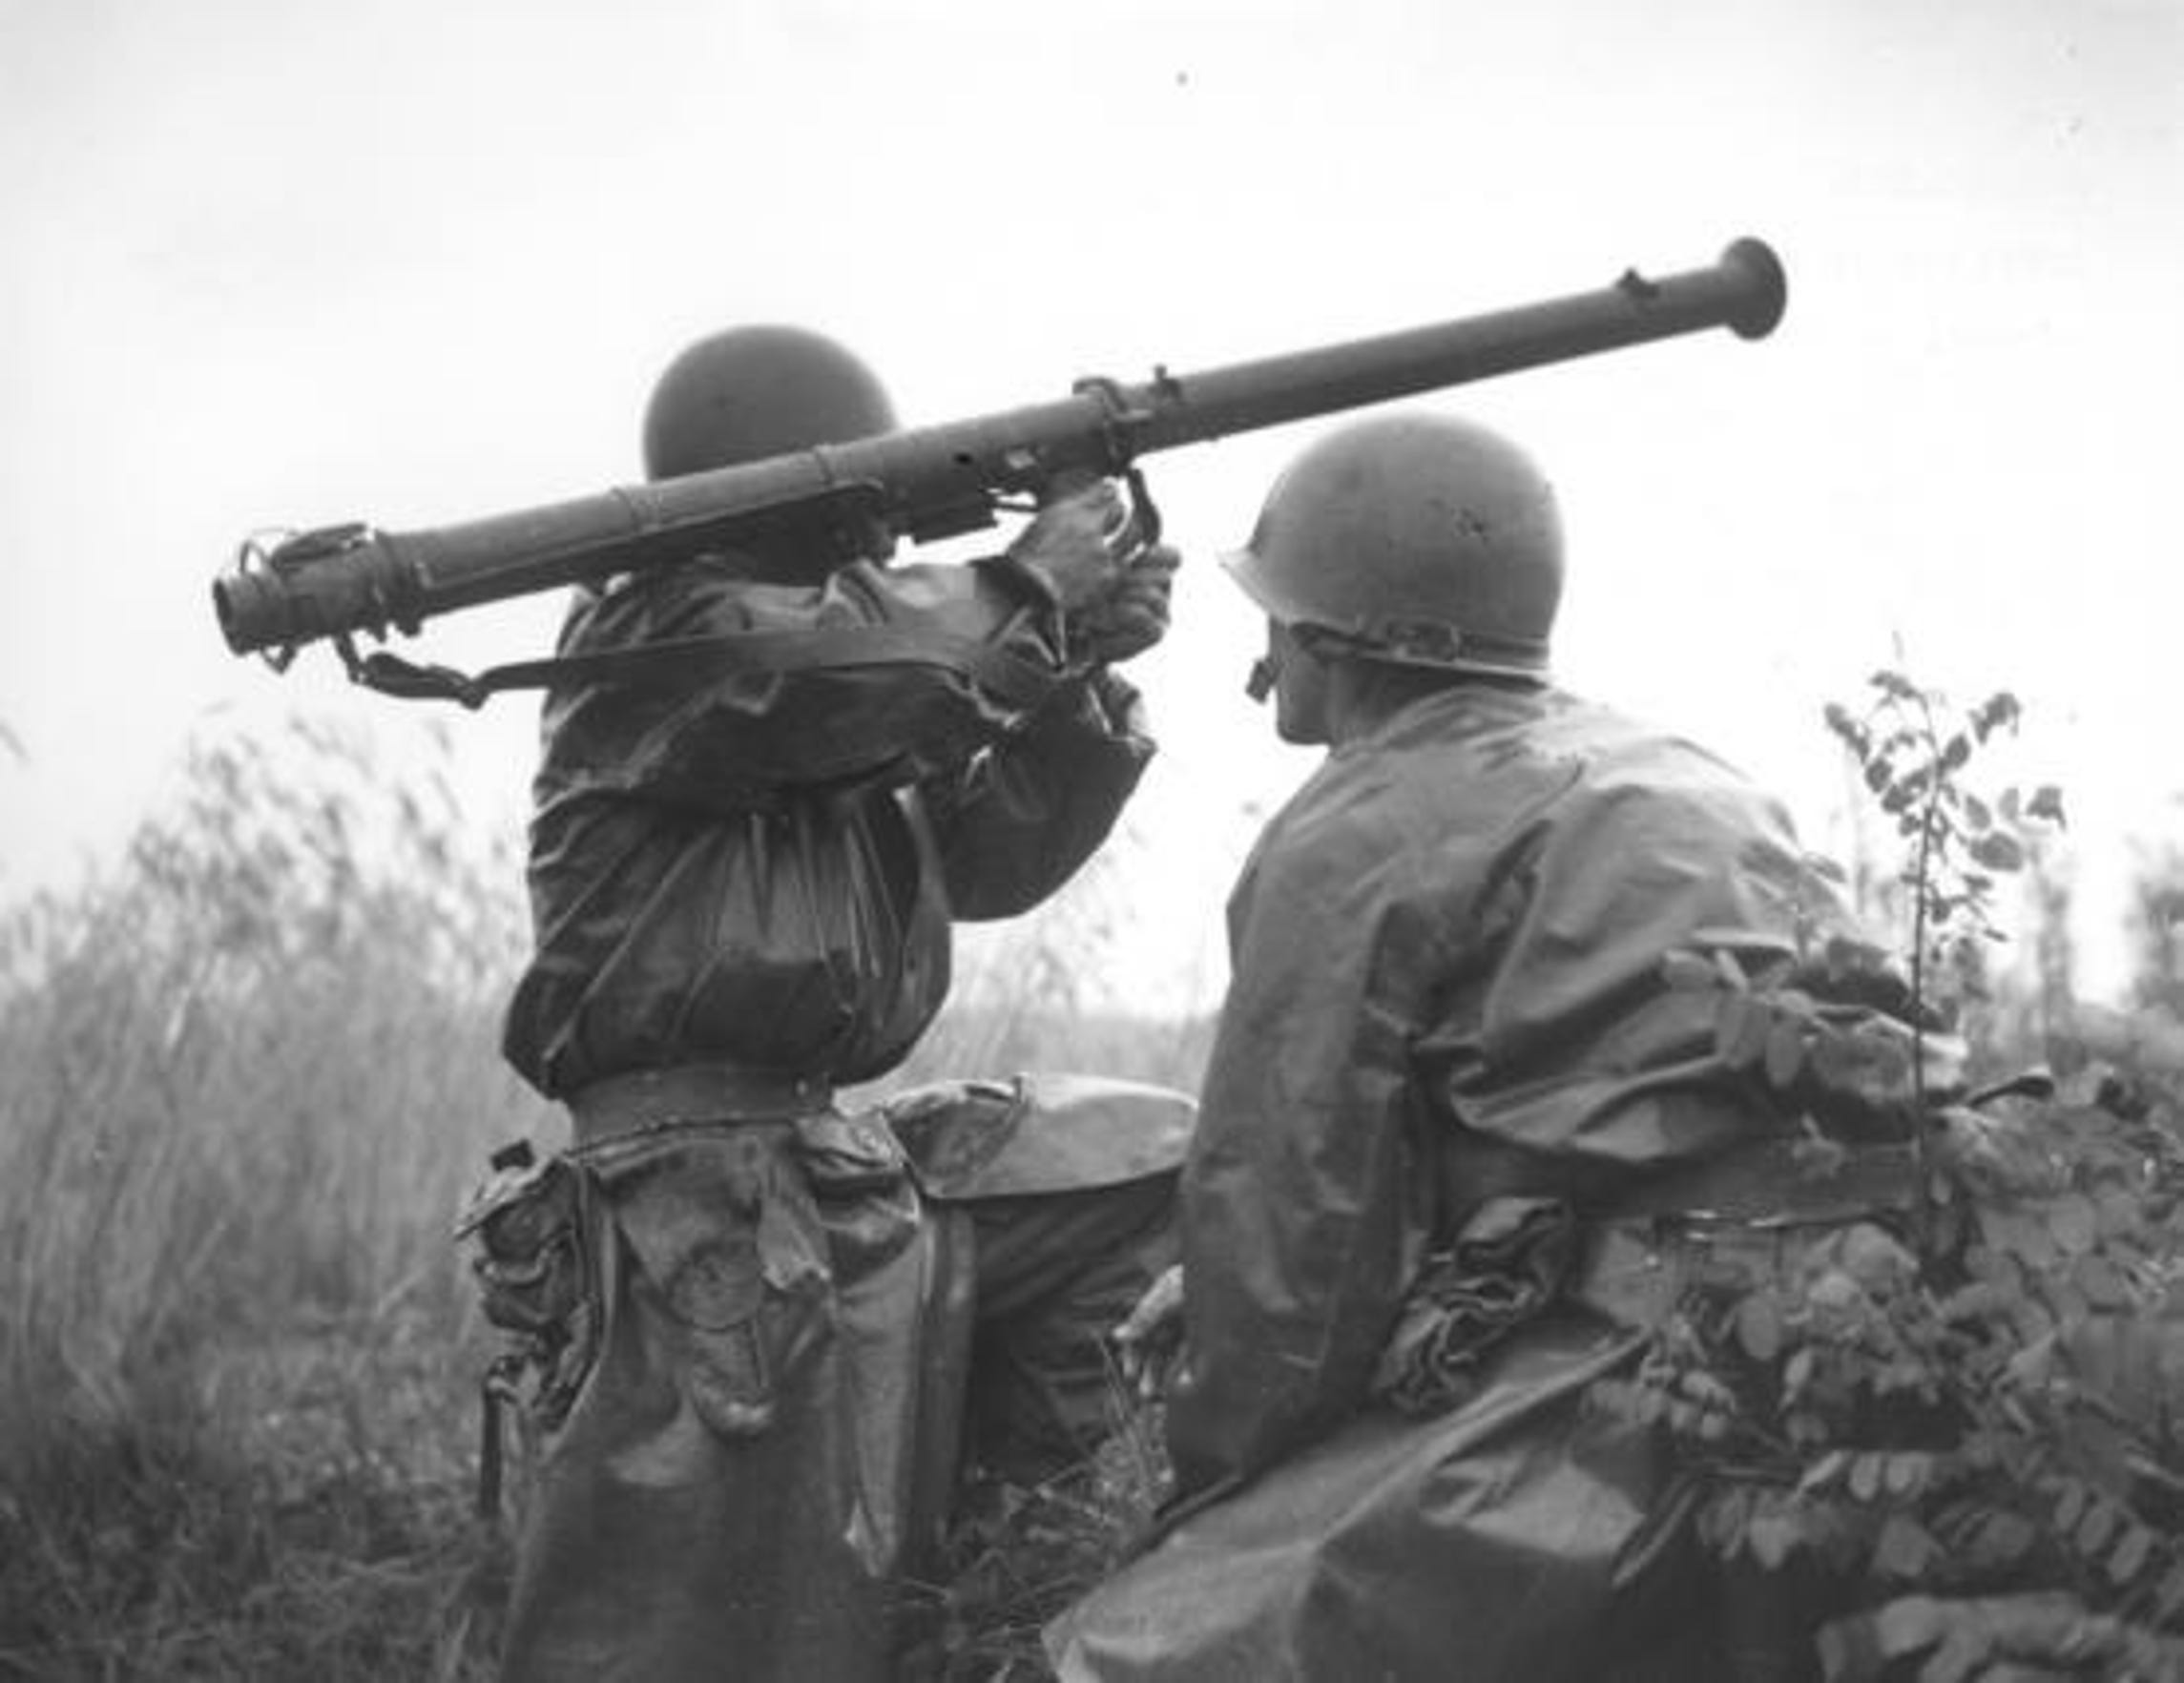 Pvt. Kenny Shadrick (right), seen here moments before his death by North Korean machine gun fire, was killed July 5, 1950. He was the first U.S. infantryman reported dead during the Korean War, but Staff Sgt. Joe Campos died in a plane crash on June 28, 1950. To this day, Shadrick is still widely considered the first American killed in the Korean War.